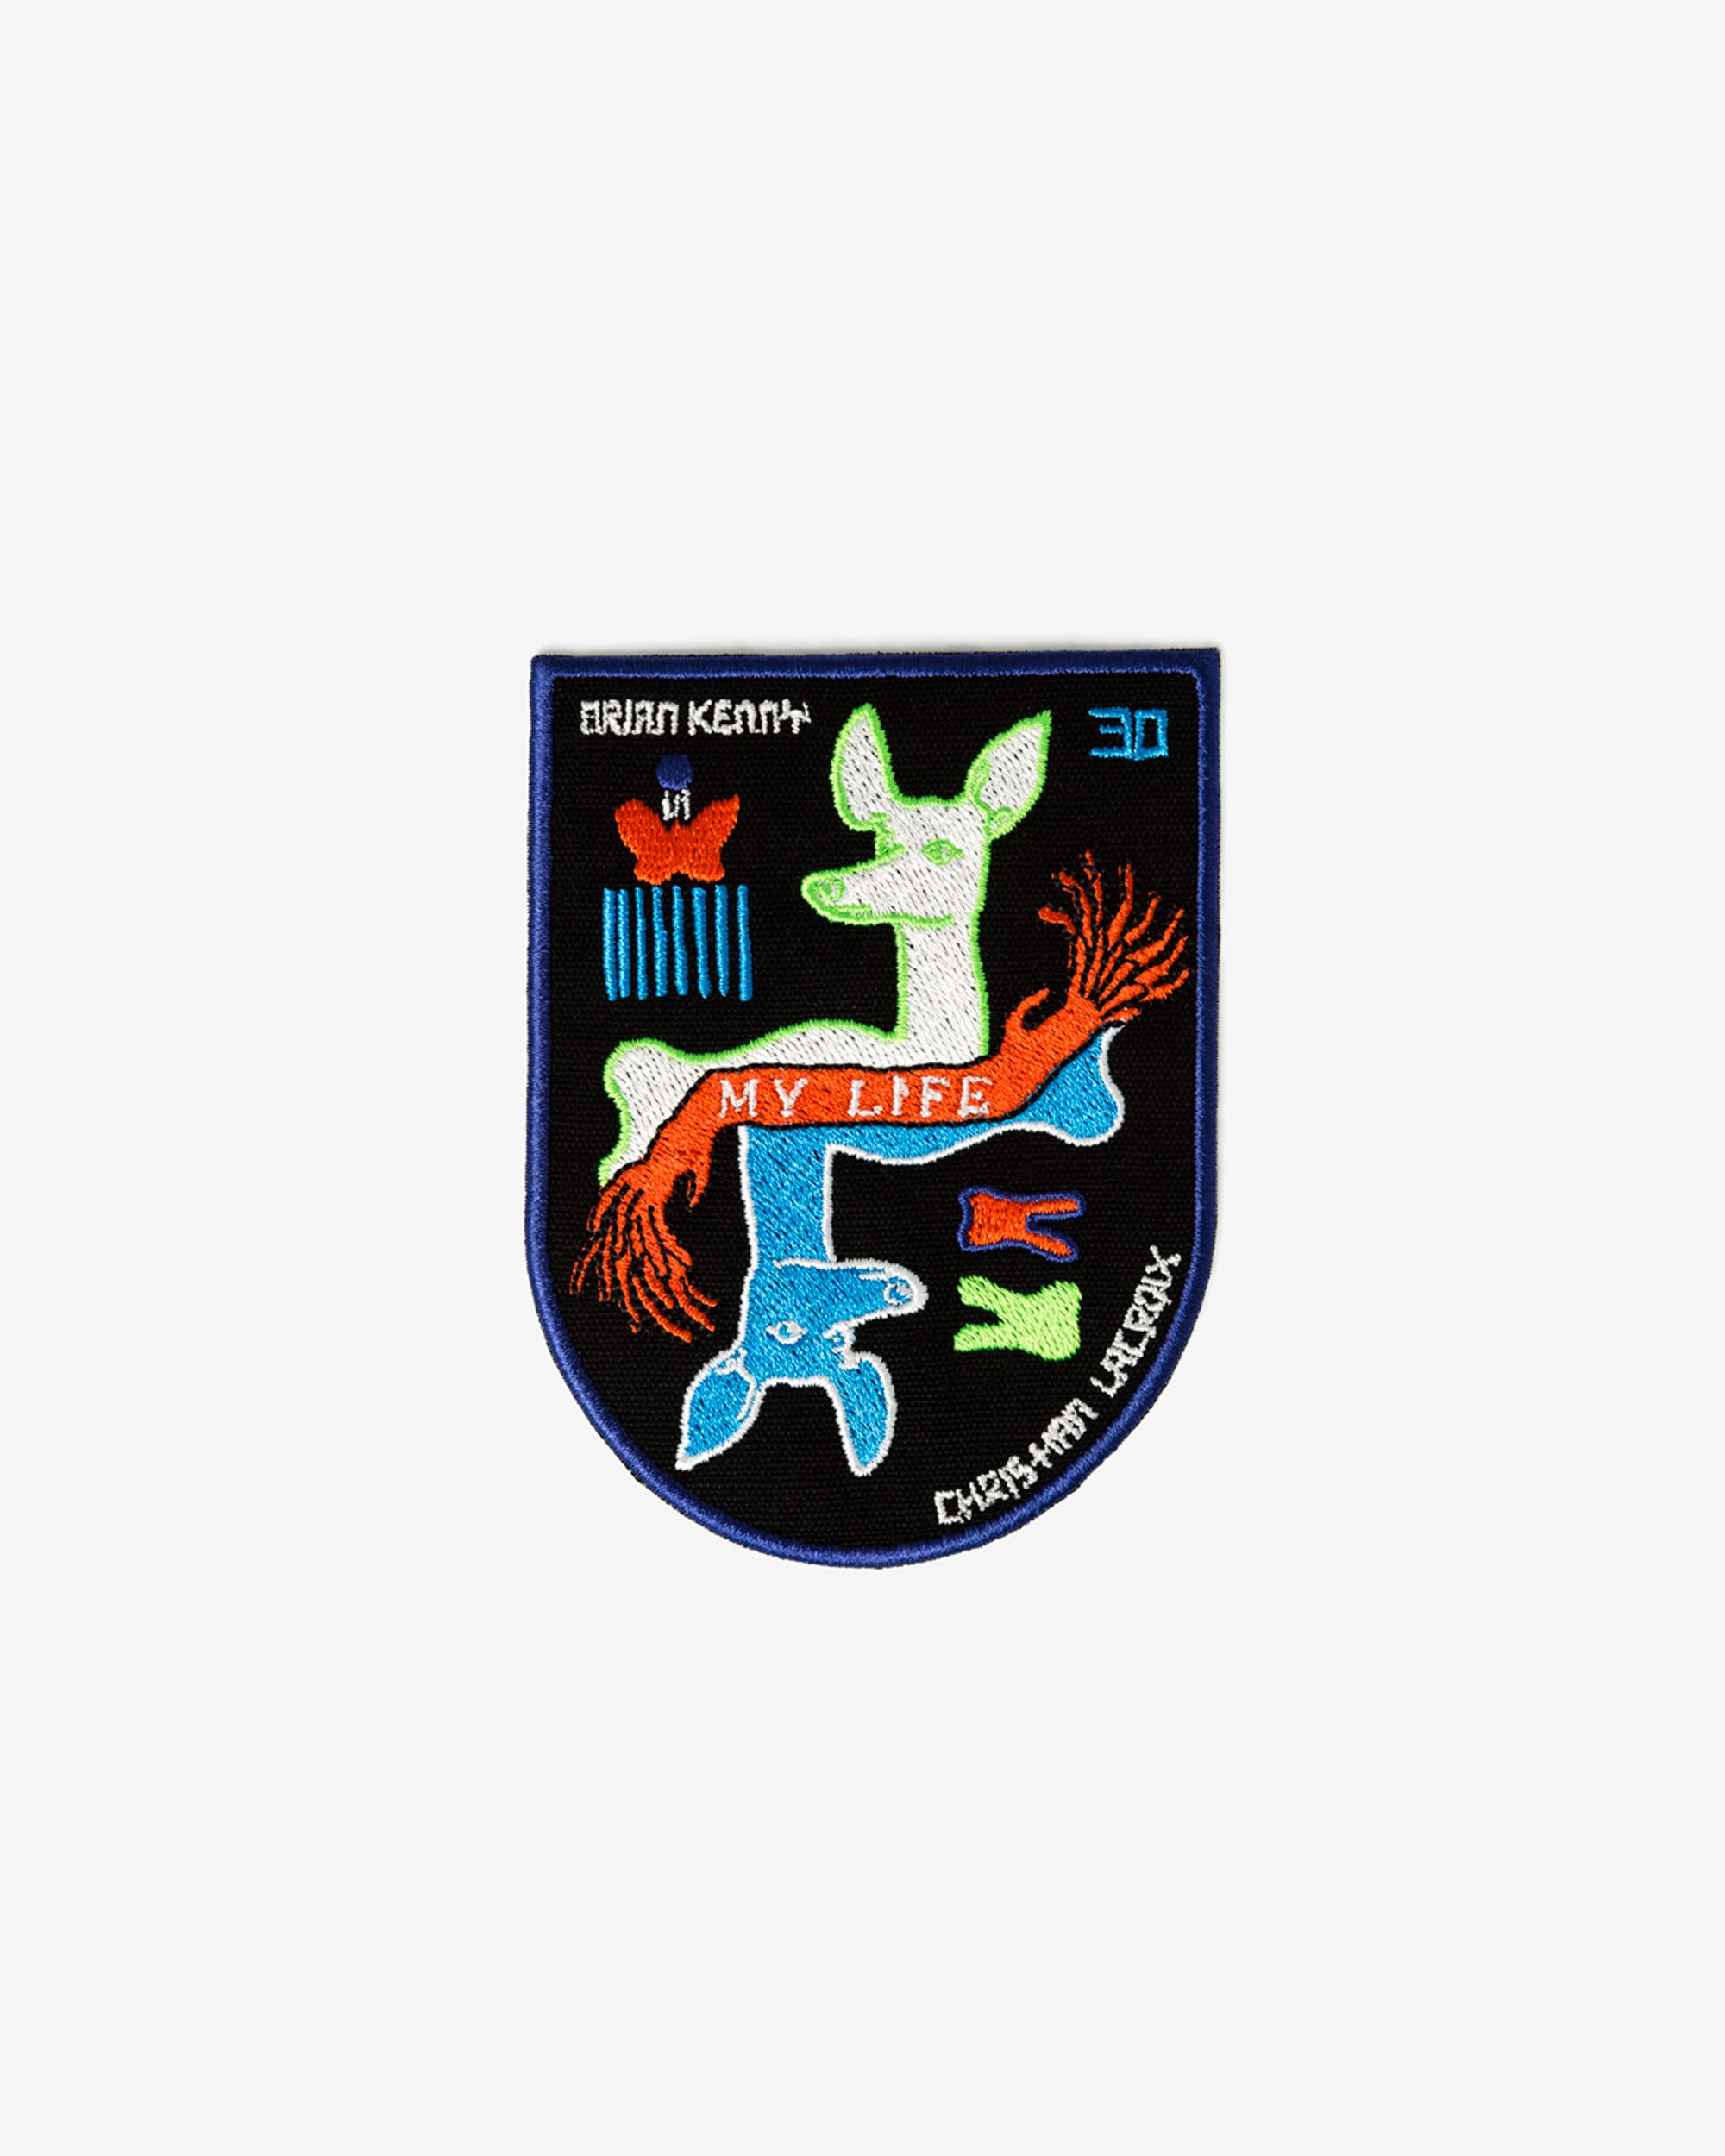 Lacroix_30_ans_CL_x_BK_Badge_Coat_of_arms_black_5a01dff1d6f08.jpg